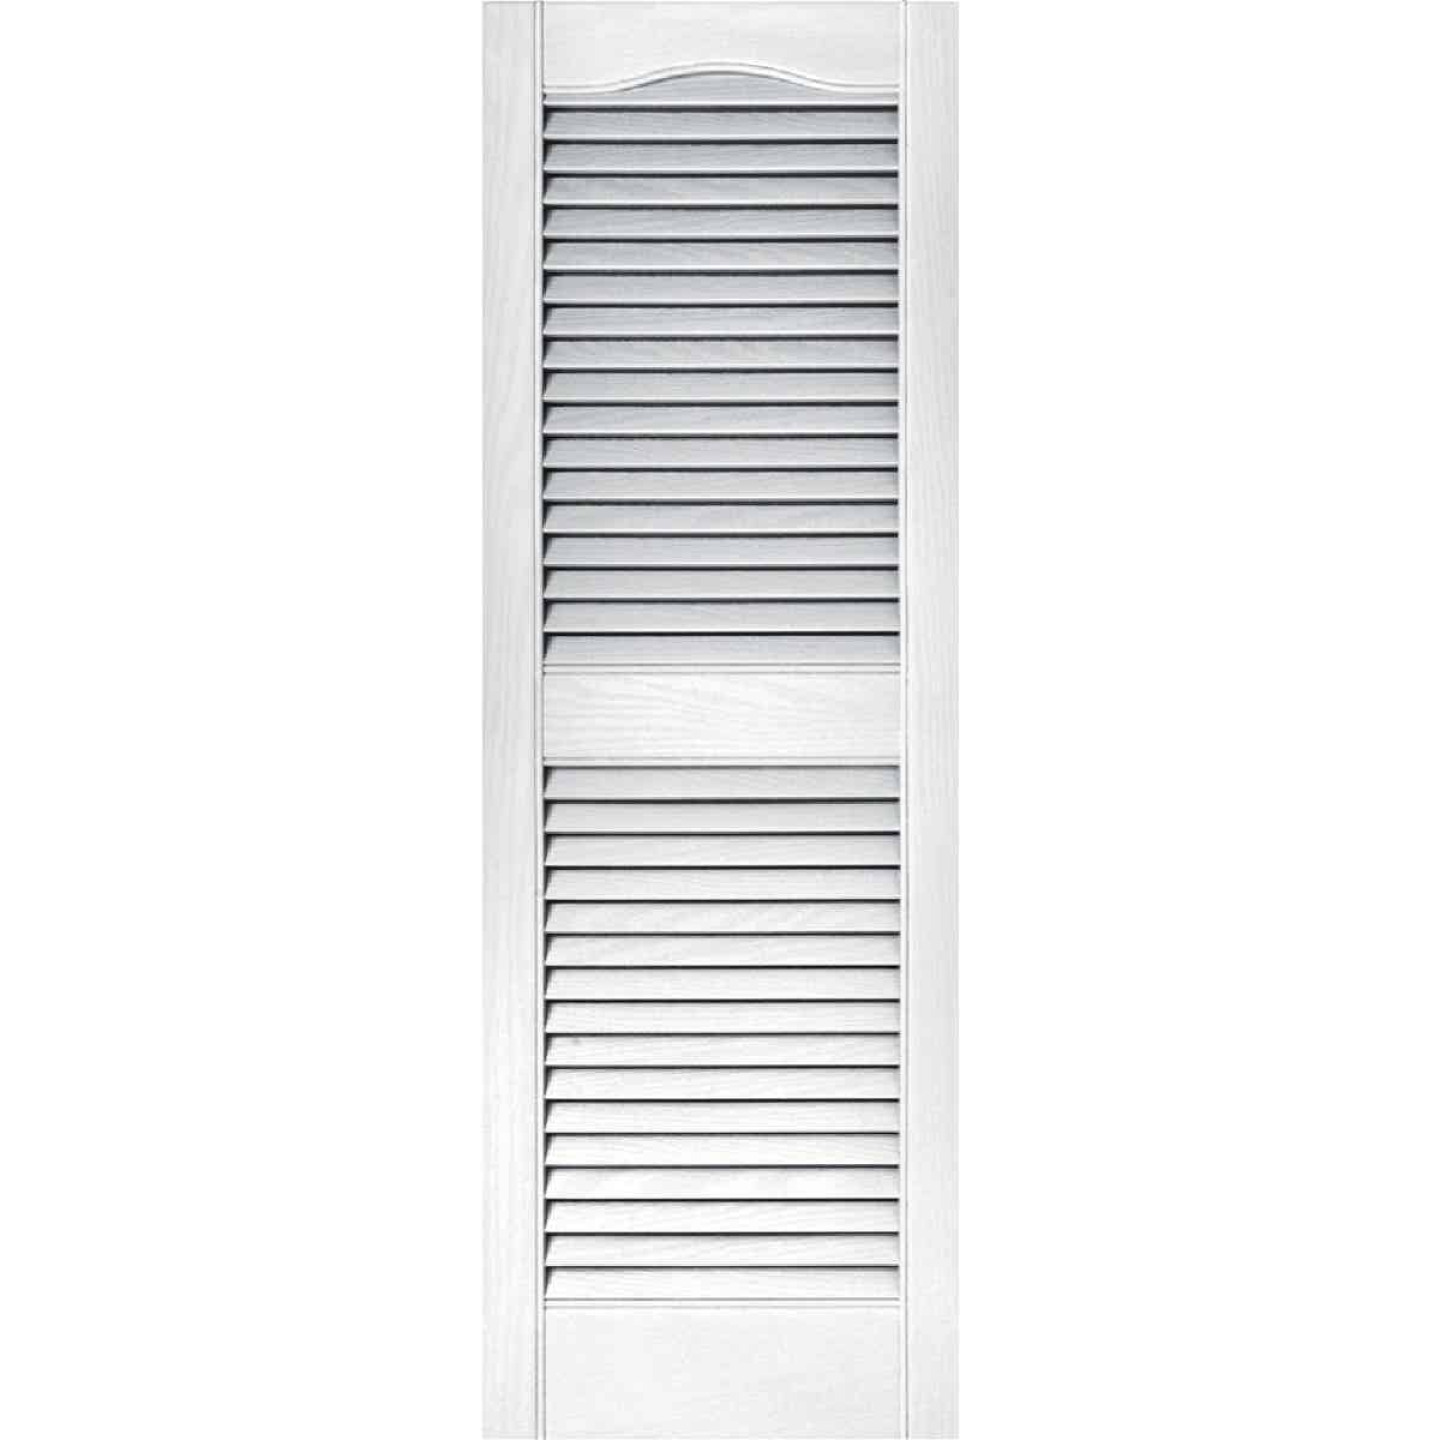 Builders Edge 15 In. x 43 In. Vinyl Louvered Shutter, (2-Pack) Image 1